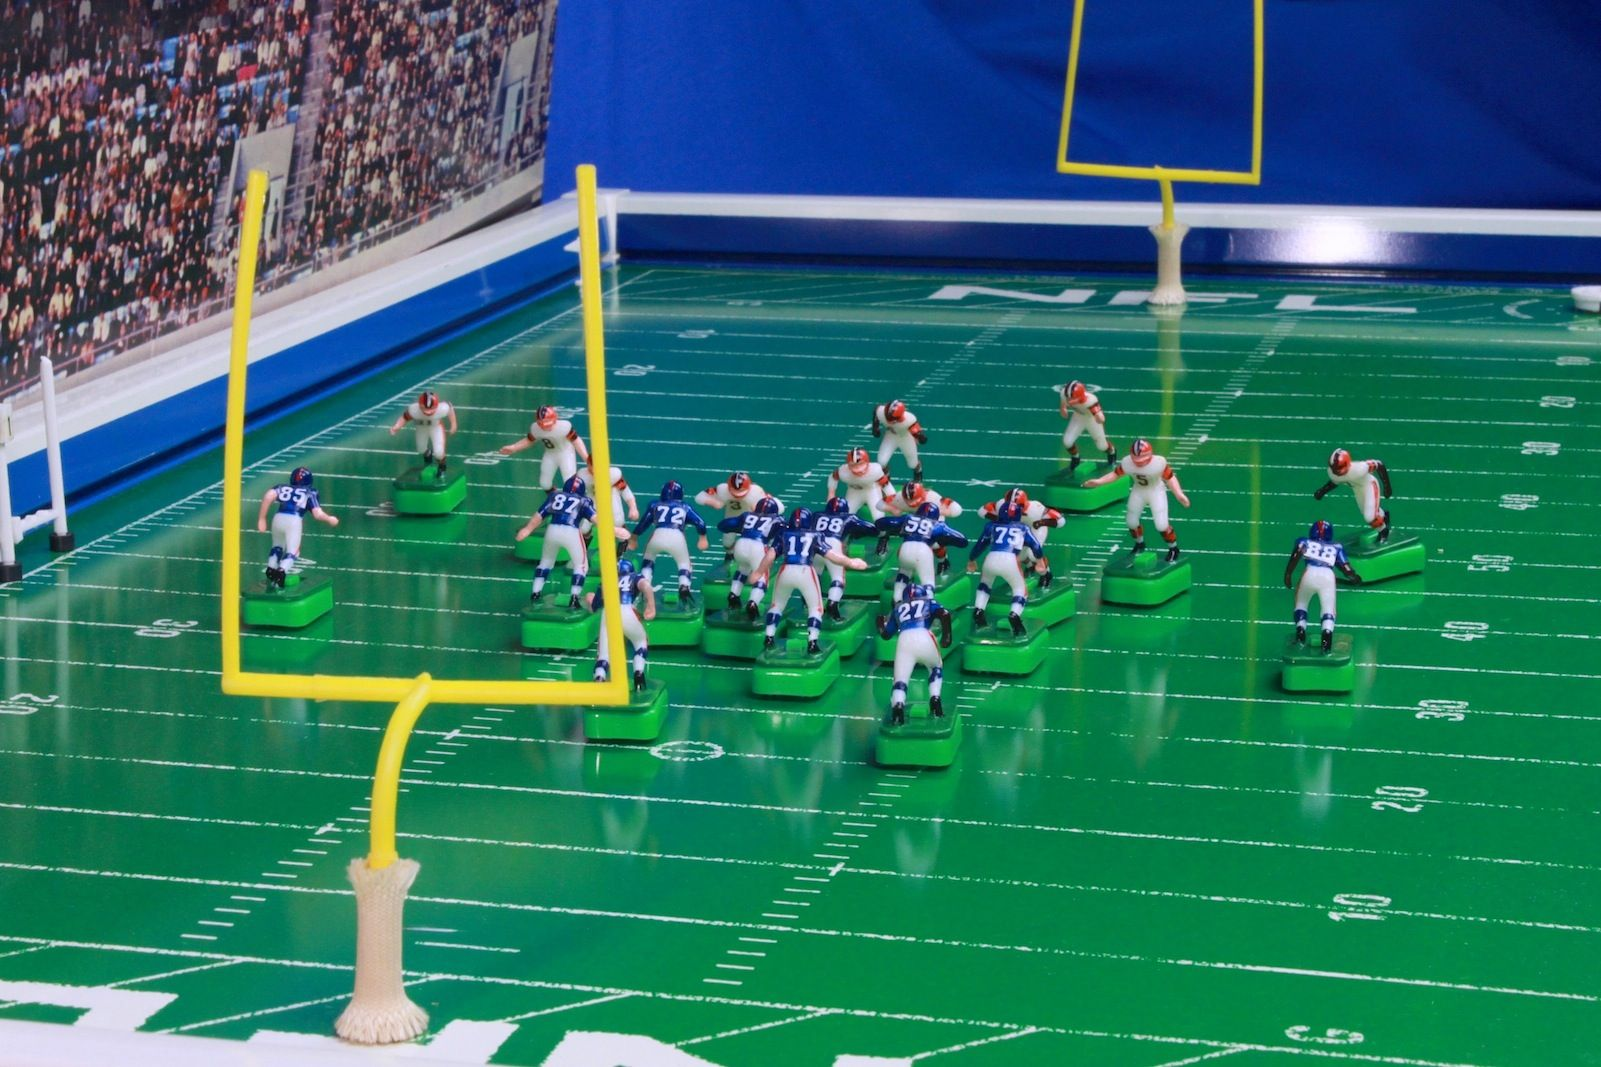 NFL Browns and Giants on a late 1960's Tudor No. 620 model. | Electric  football, Vintage football, Football images